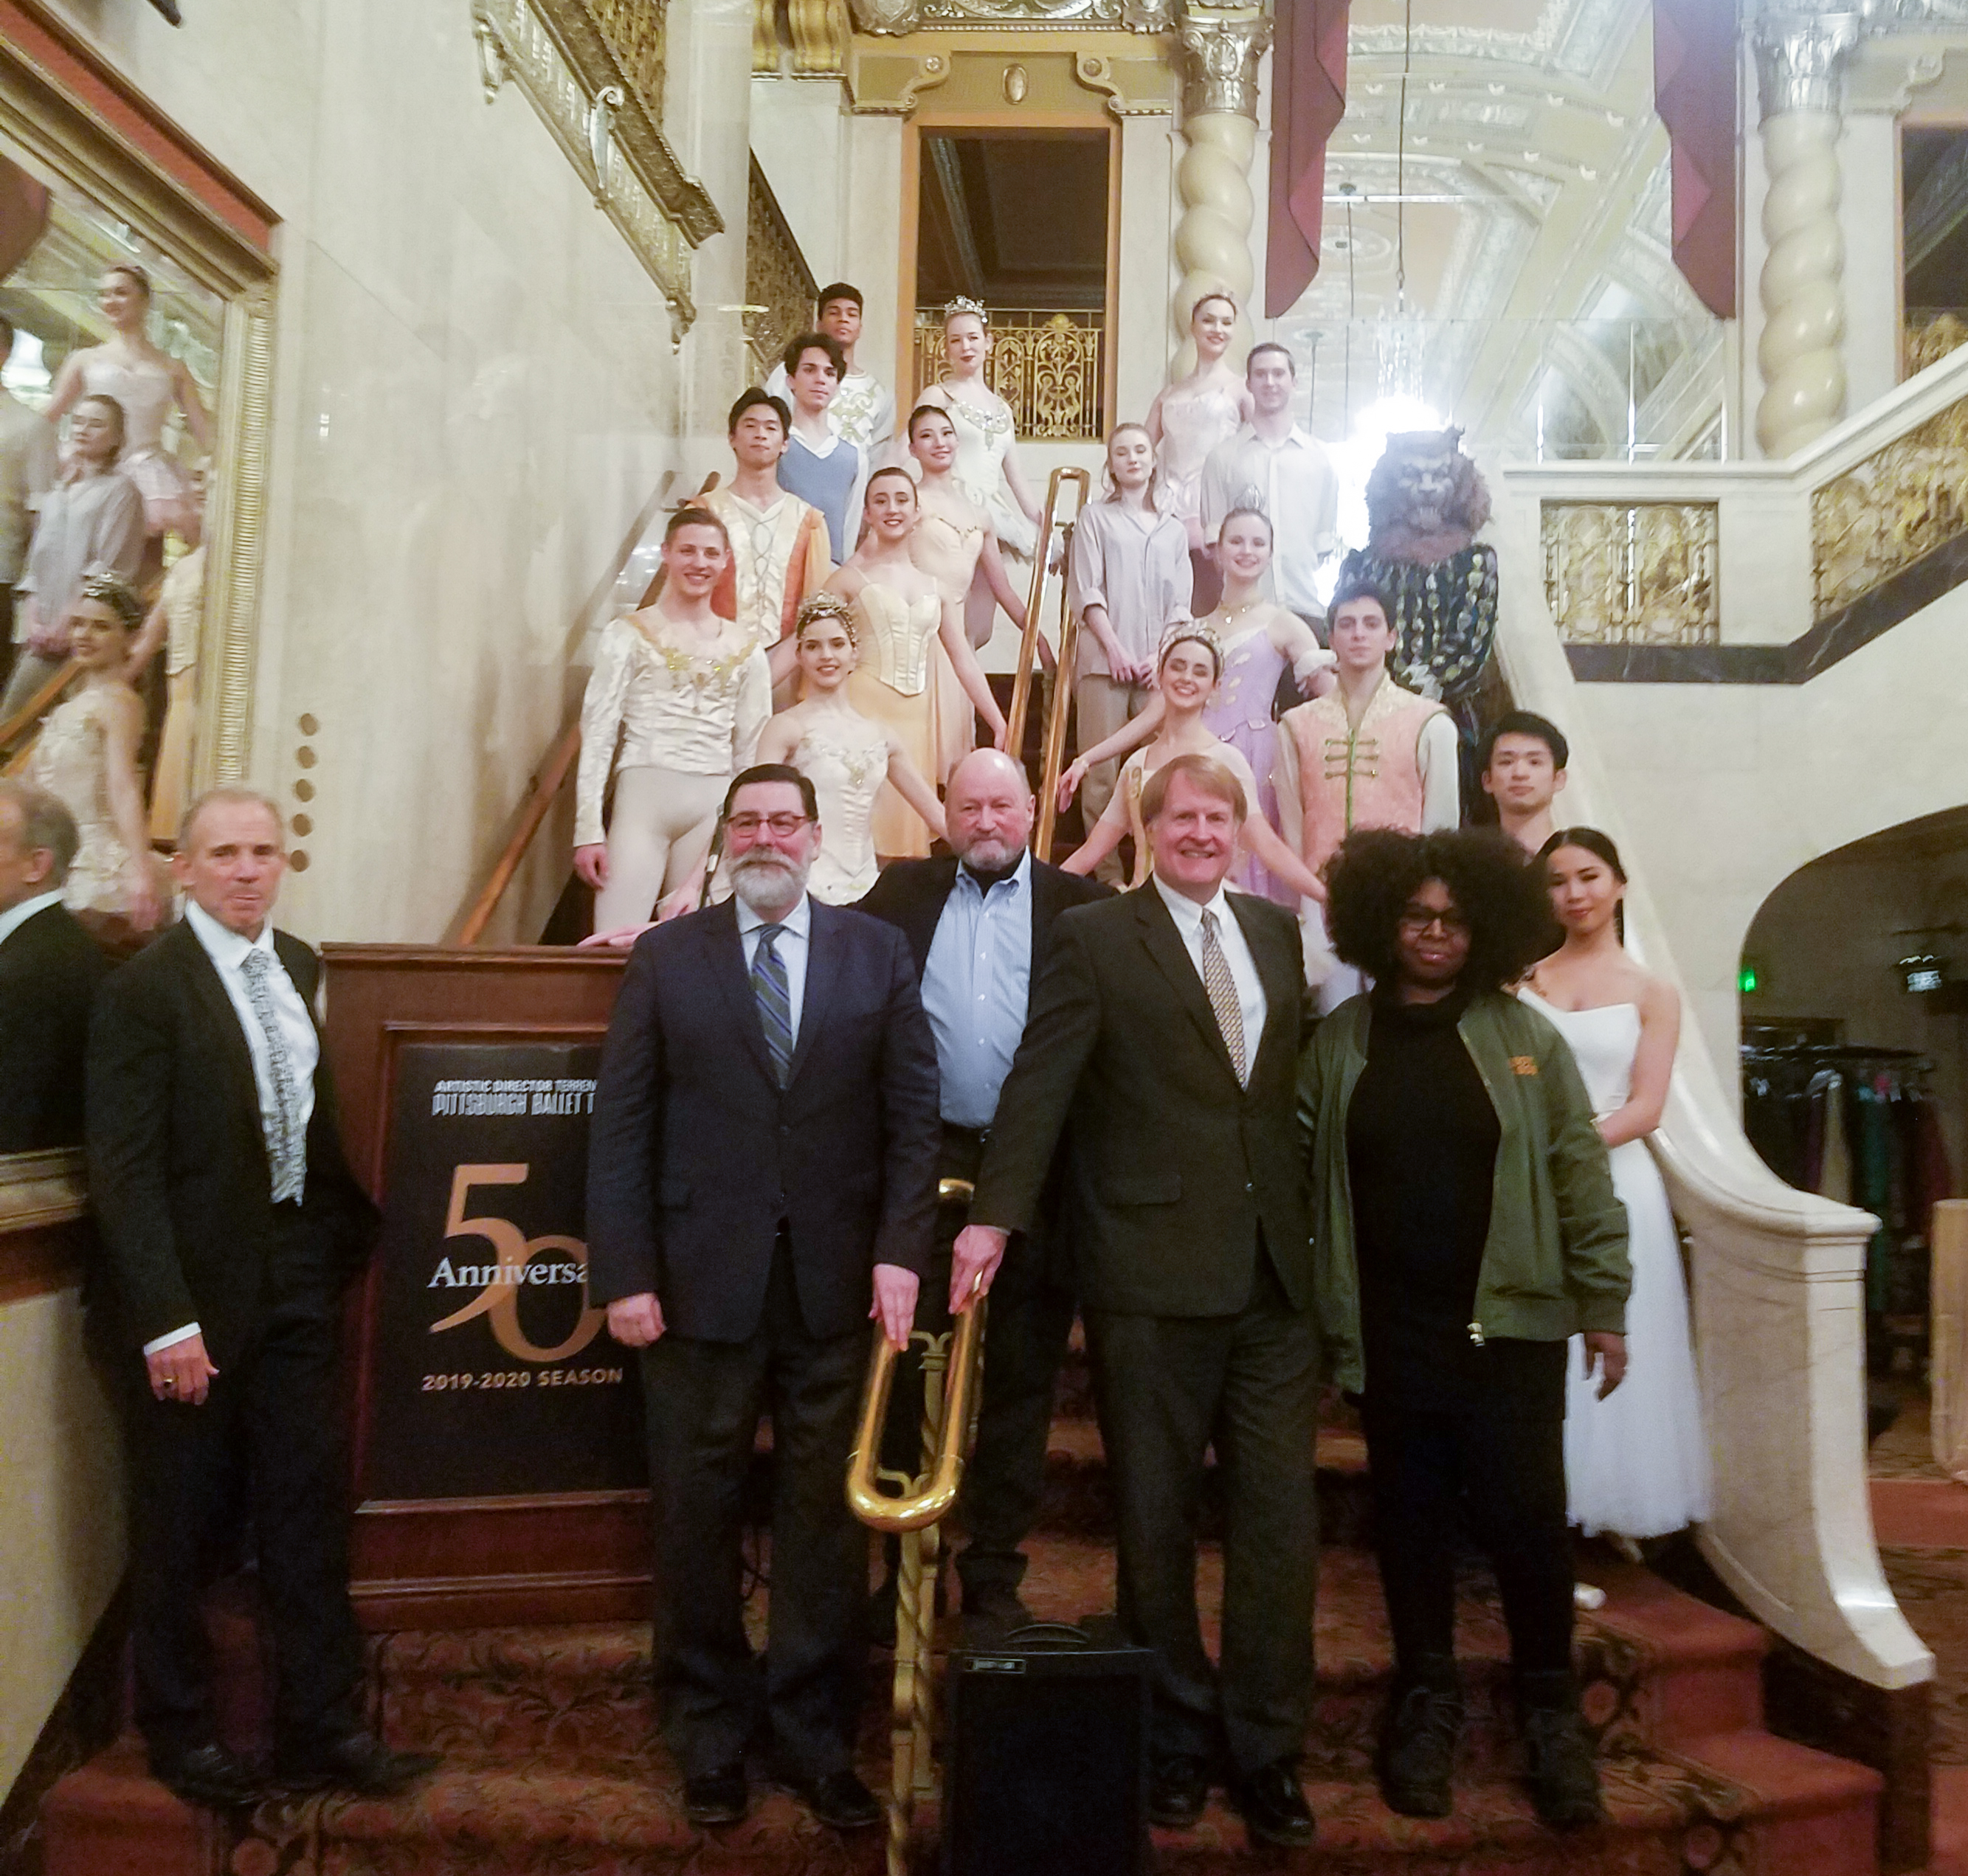 PBT Artistic Director Terrence S. Orr, center is flanked on the left by Pittsburgh Mayor Bill Peduto and PBT Executive Director Harris N. Ferris; and on the right by Allegheny County Executive Rich Fitzgerald and Artist in Residence Staycee Pearl. PBT dancers are behind them.